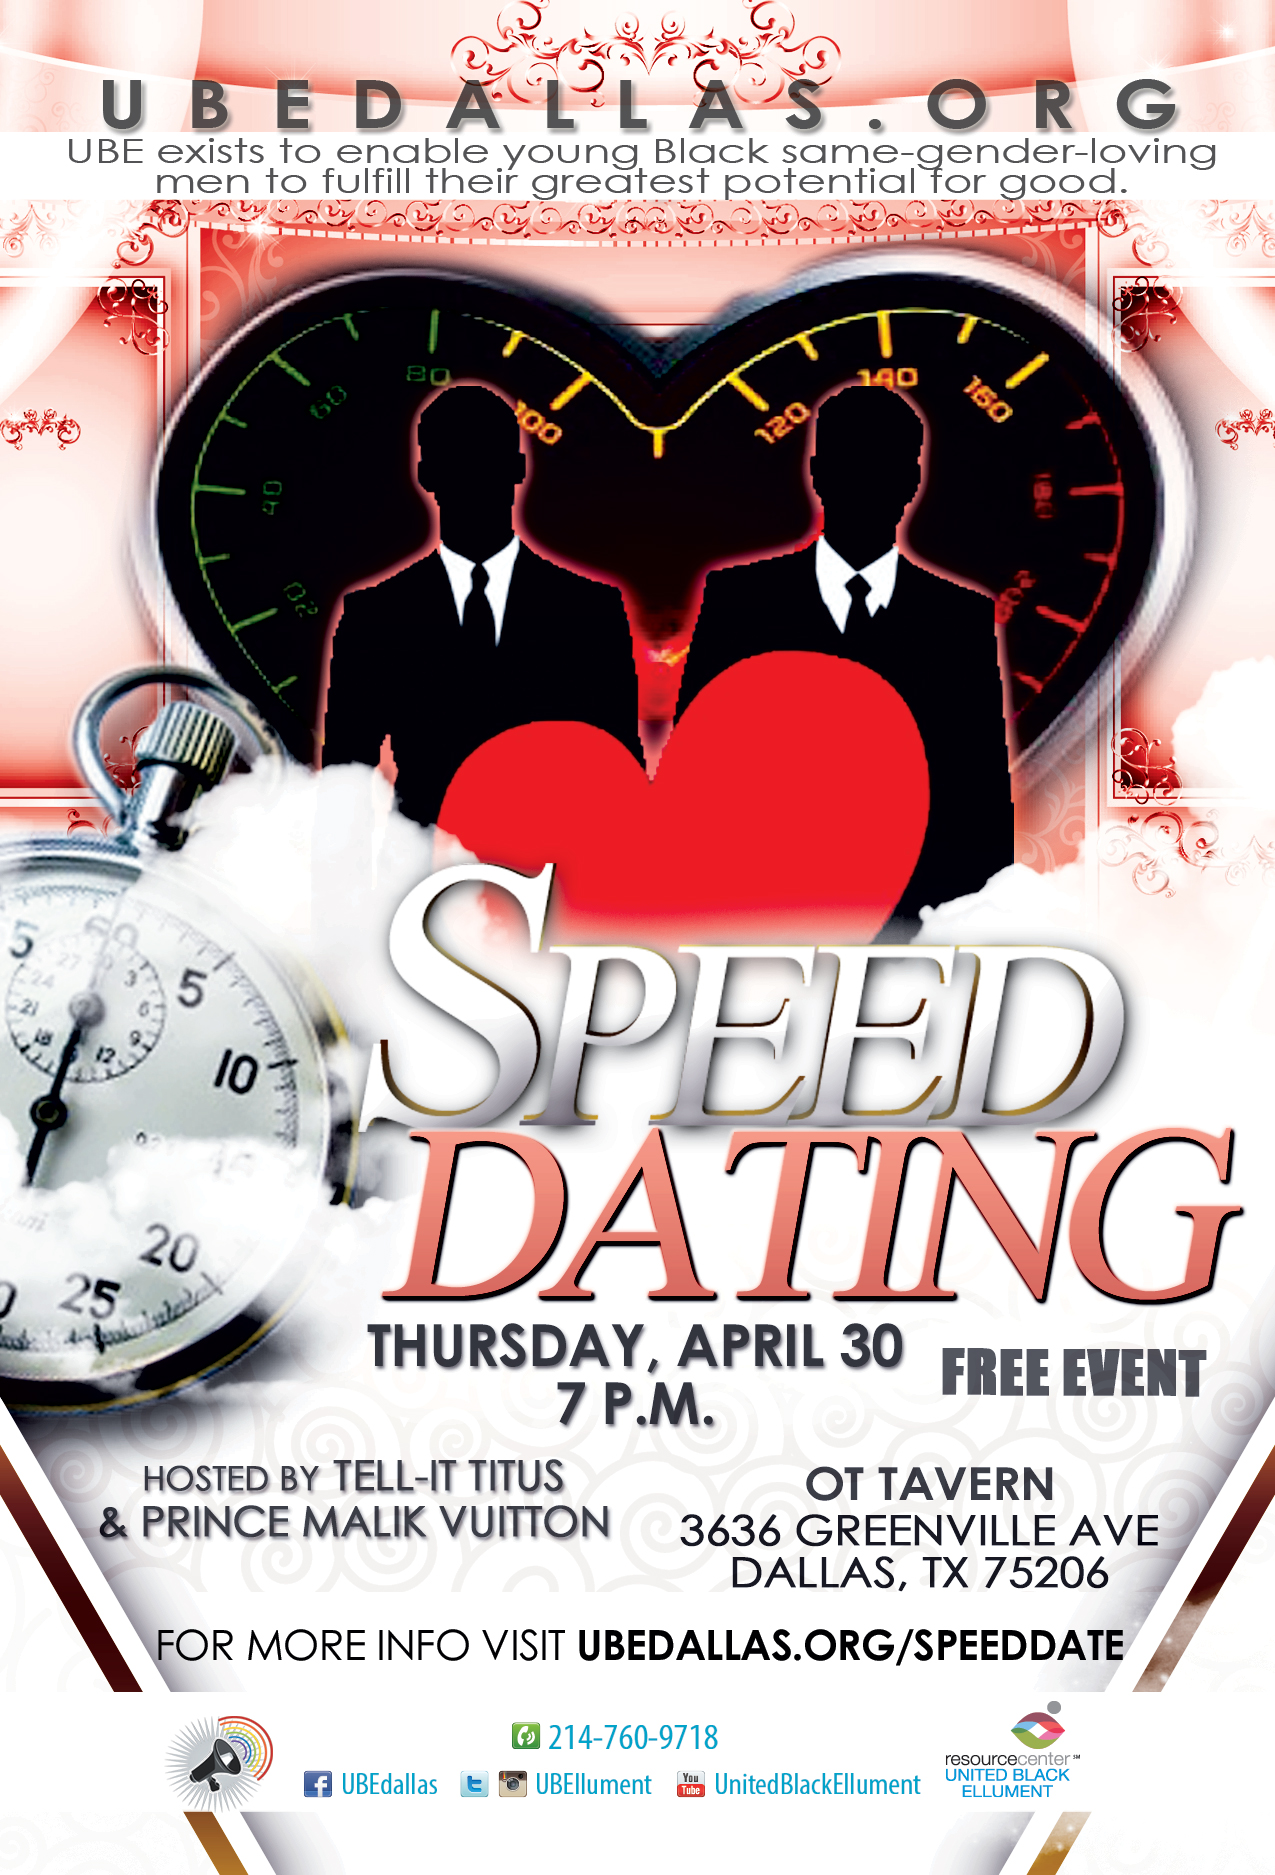 Free speed dating images